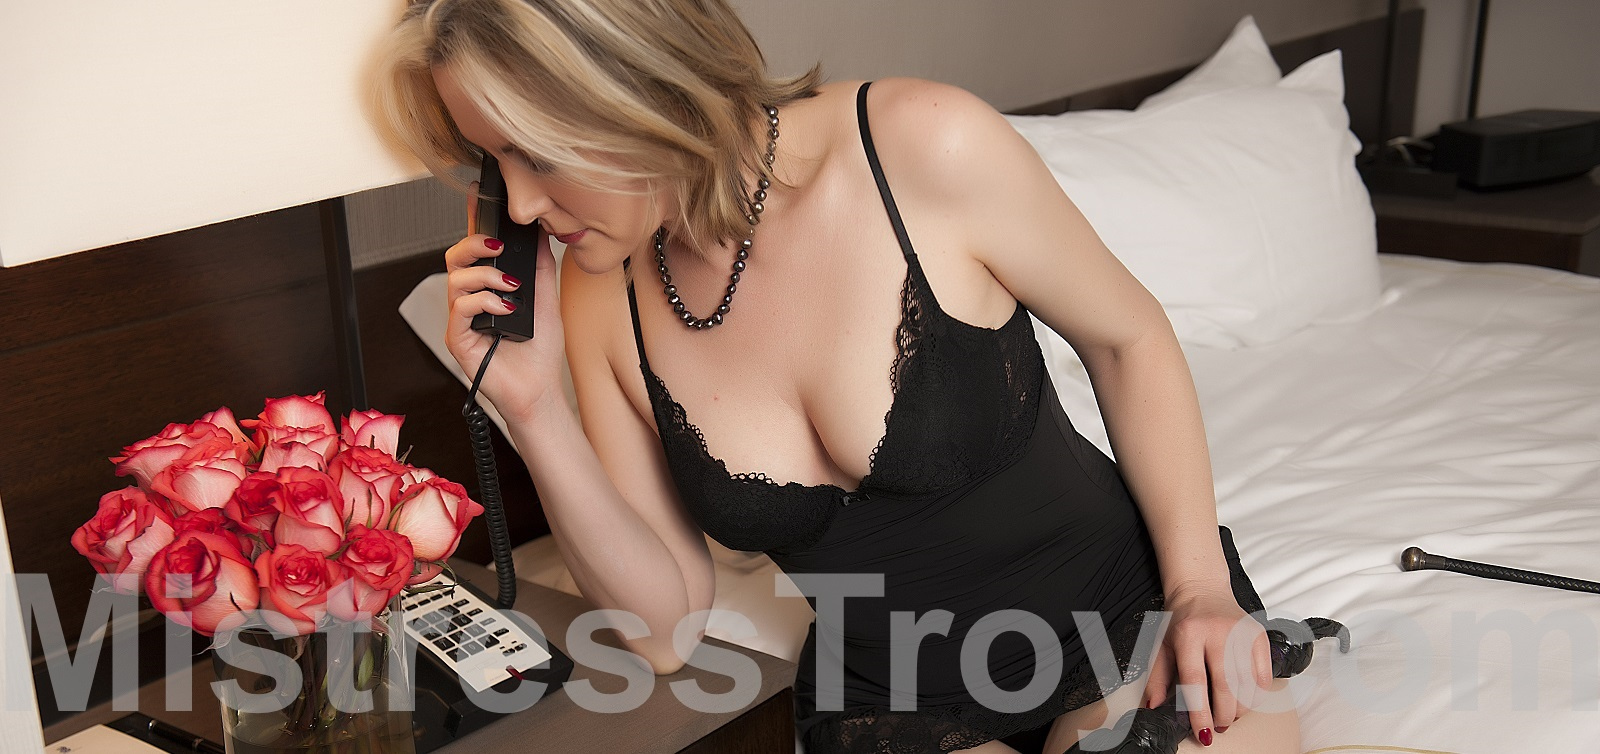 FemDomme Mistress Troy of New York NY offers phone sessions to Her male slaves and submissives